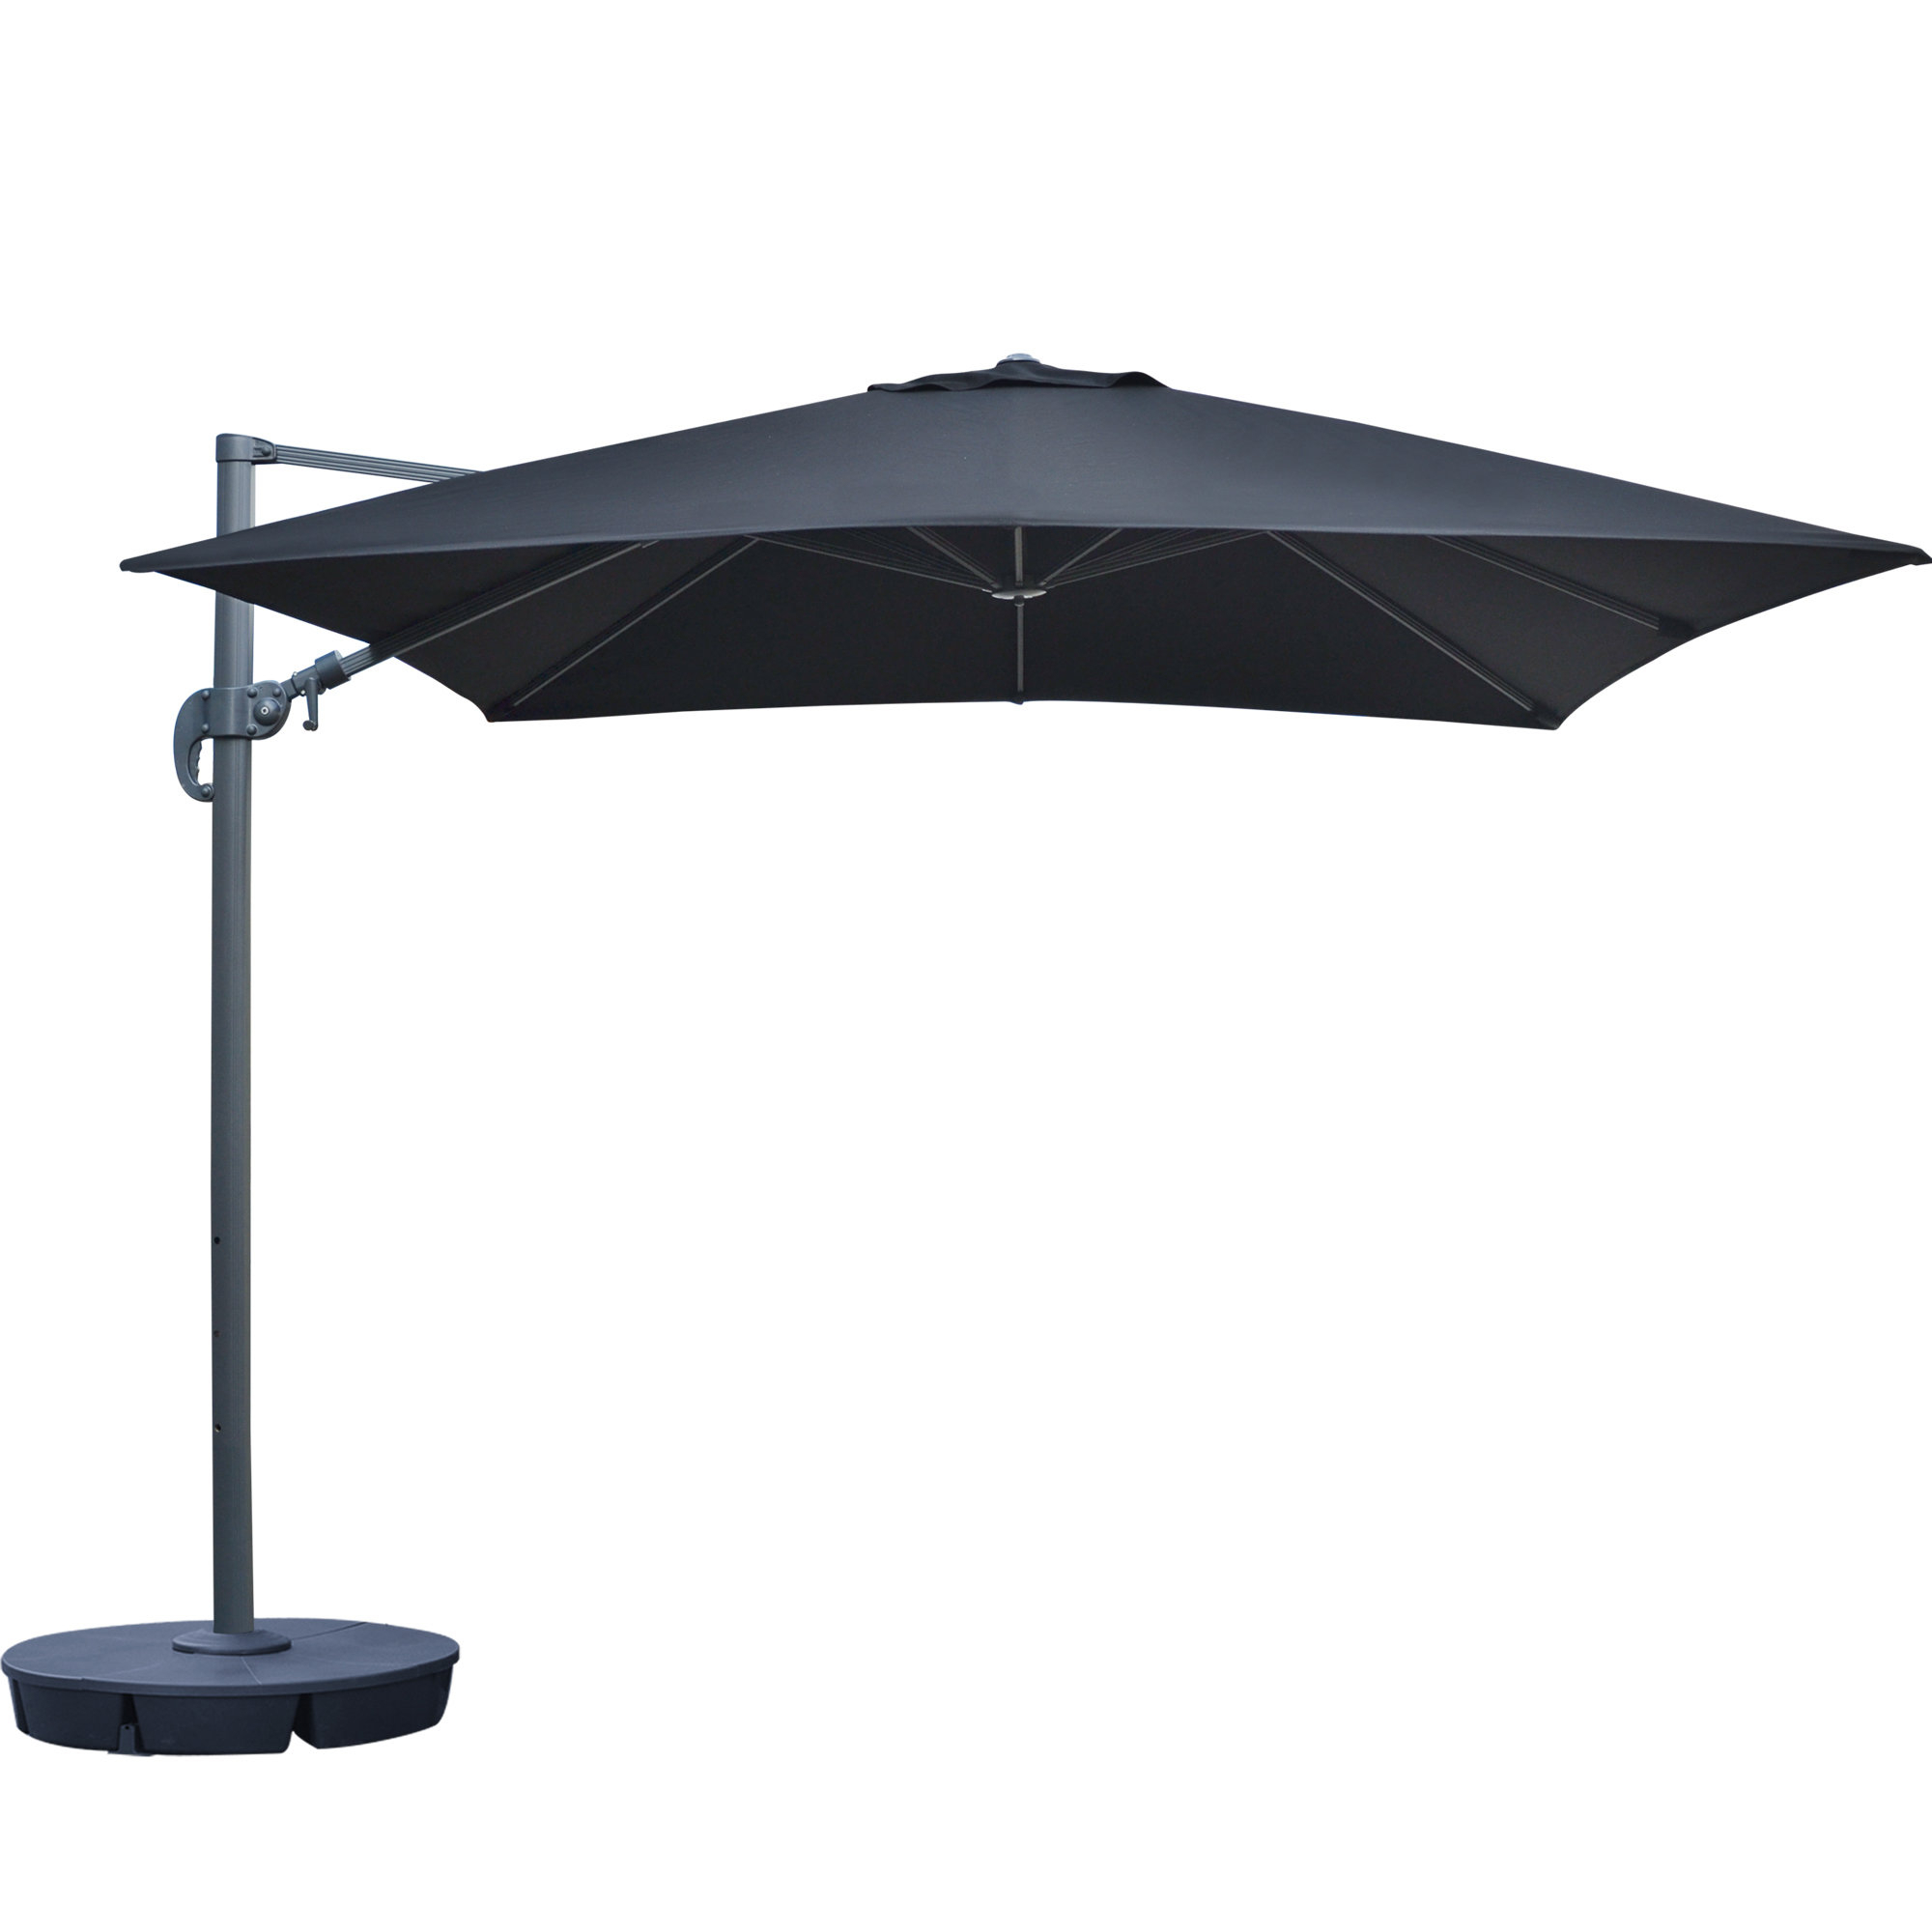 Ceylon Cantilever Sunbrella Umbrellas Intended For 2020 Freeport 10' Cantilever Sunbrella Umbrella (View 16 of 20)